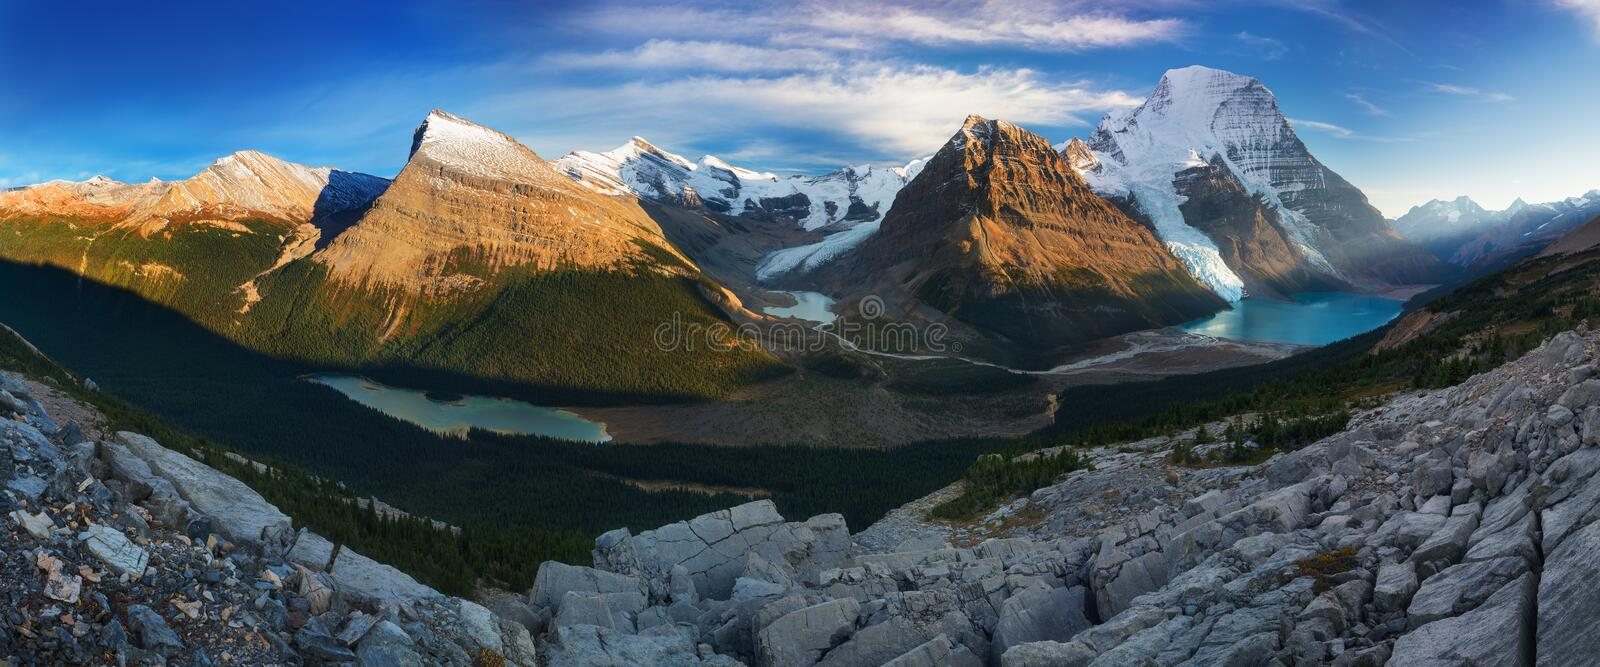 Distant Panoramic Landscape of Berg Lake and Snowy Mountain Robson Top in Jasper National Park Canadian Rocky Mountains. royalty free stock photography